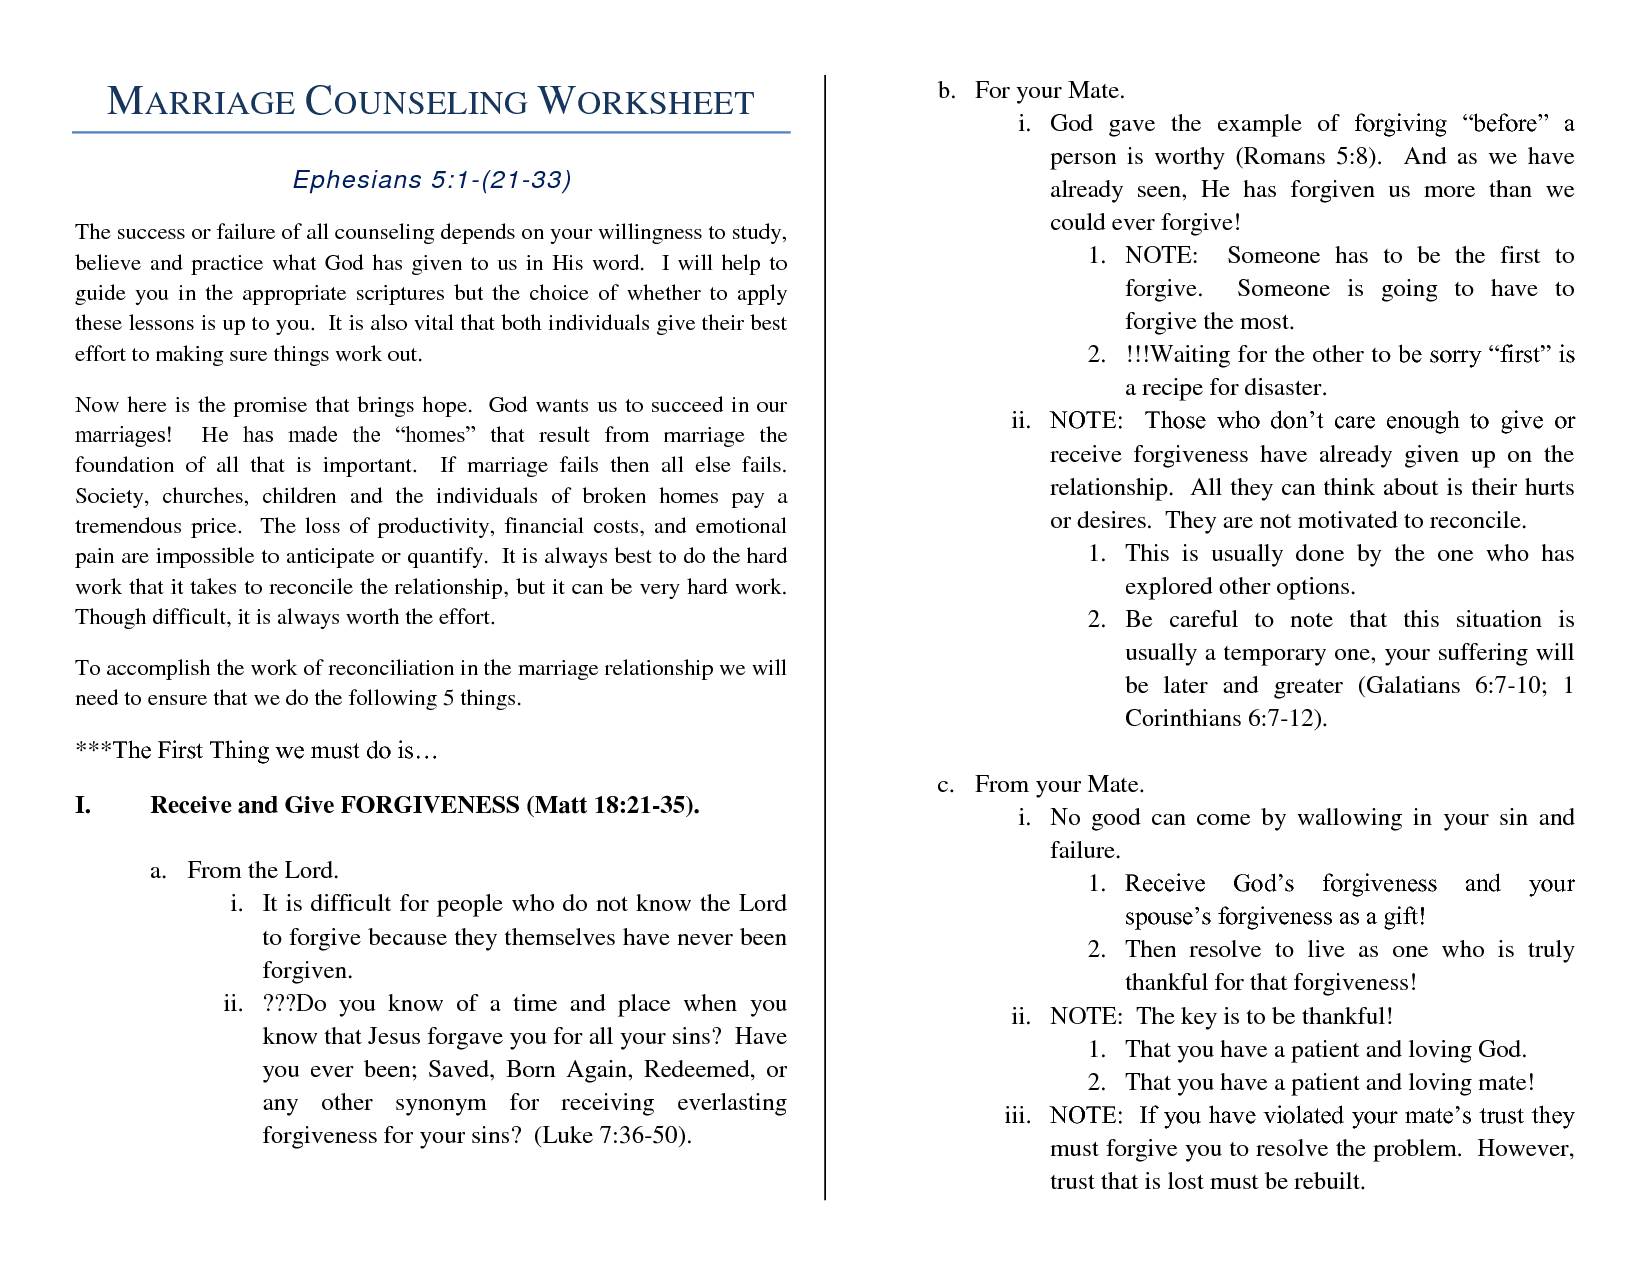 Worksheets Free Marriage Counseling Worksheets marriagehelpworksheet marriage counseling worksheet couples worksheet